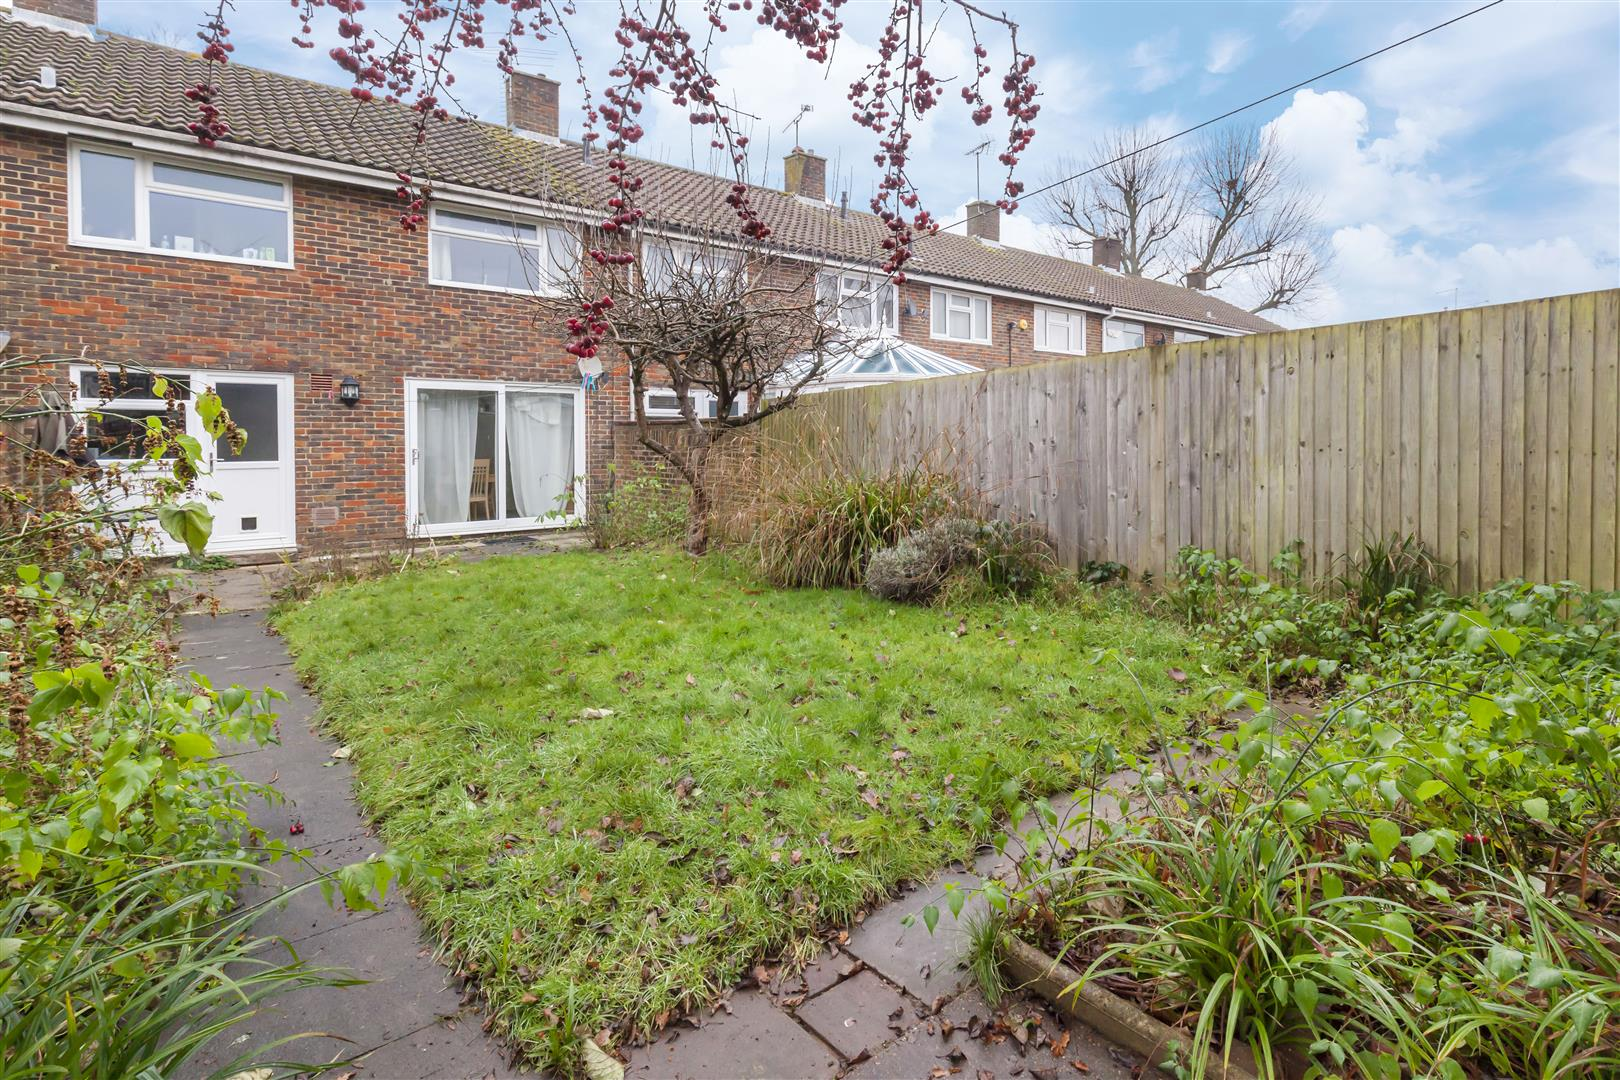 3 bed terraced-house for sale in Furnace Drive, Crawley  - Property Image 14